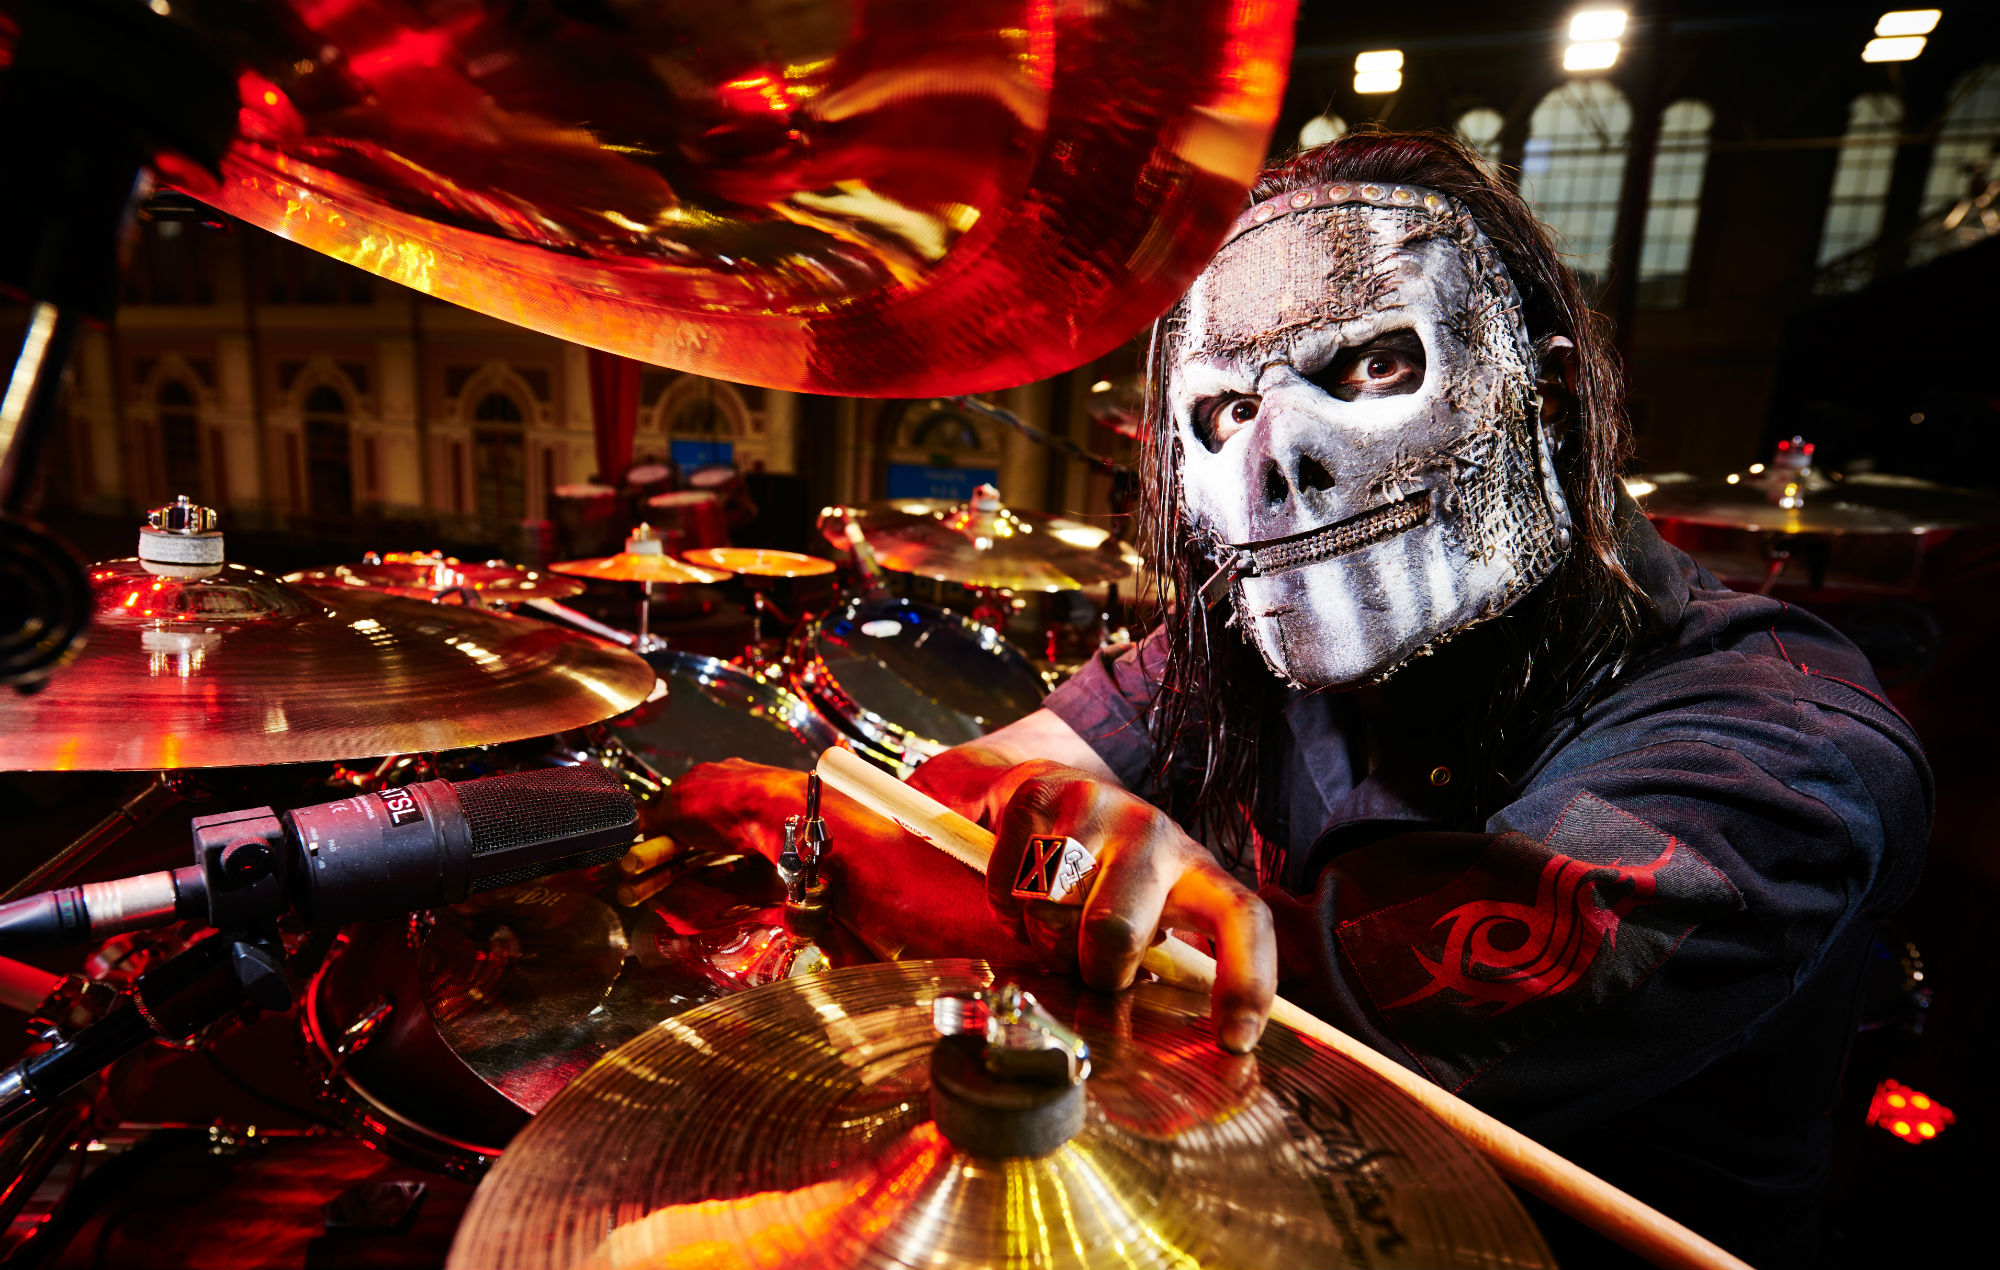 Slipknot Drummer Shares Grisly Photo That Suggests Band Is